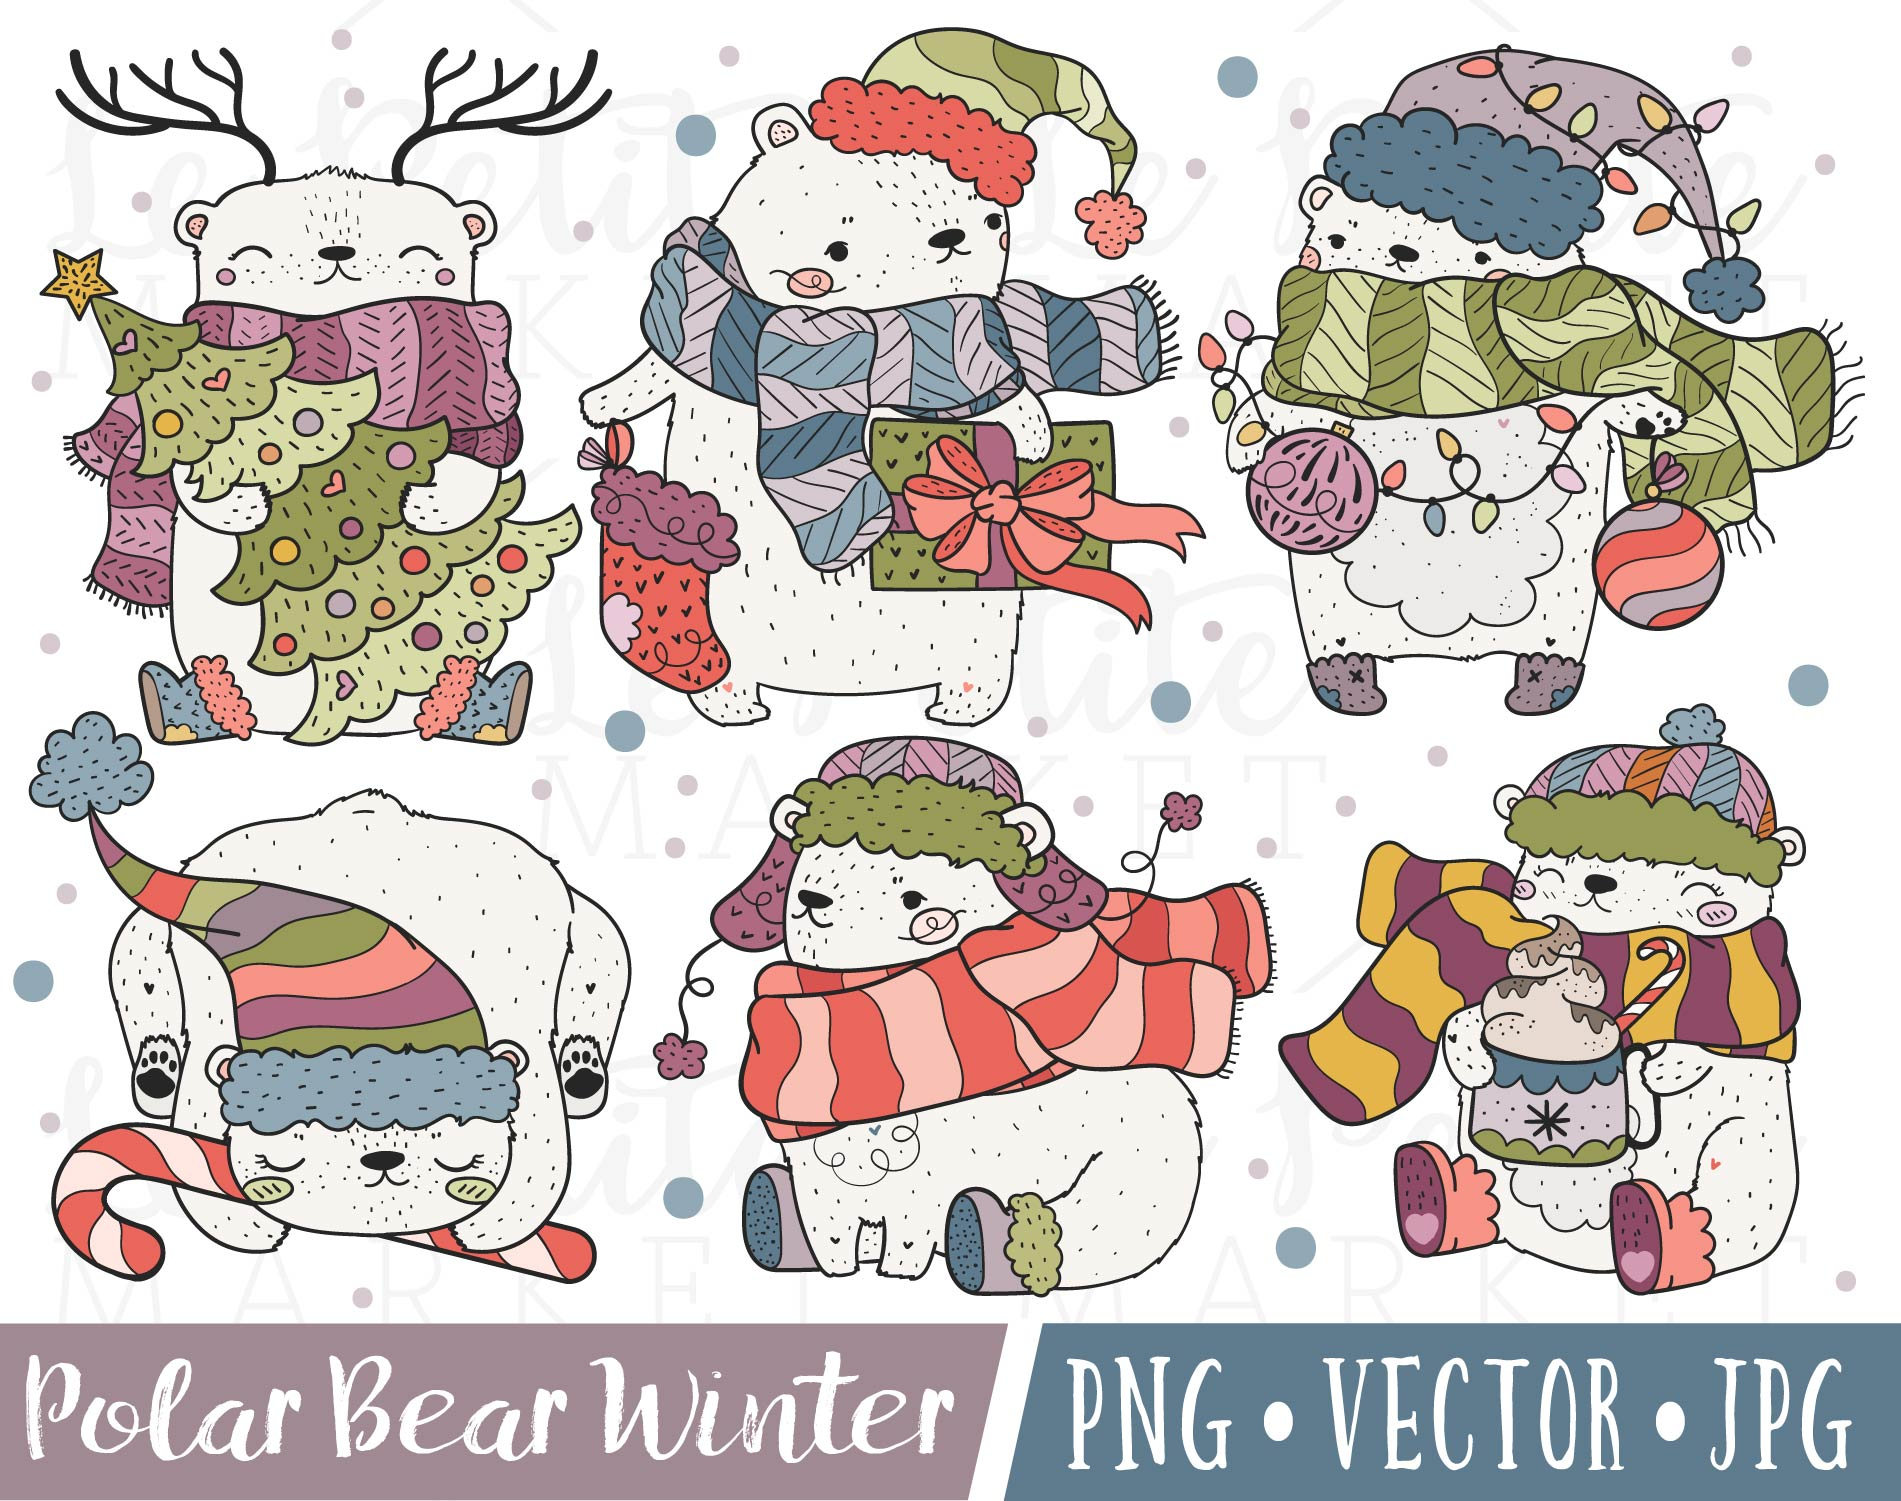 Cute Christmas Polar Bear Clipart Images, Polar Bear Clip Art, Polar Bear  Illustrations, Kawaii Holiday Bears, Winter Bear Clipart Set.